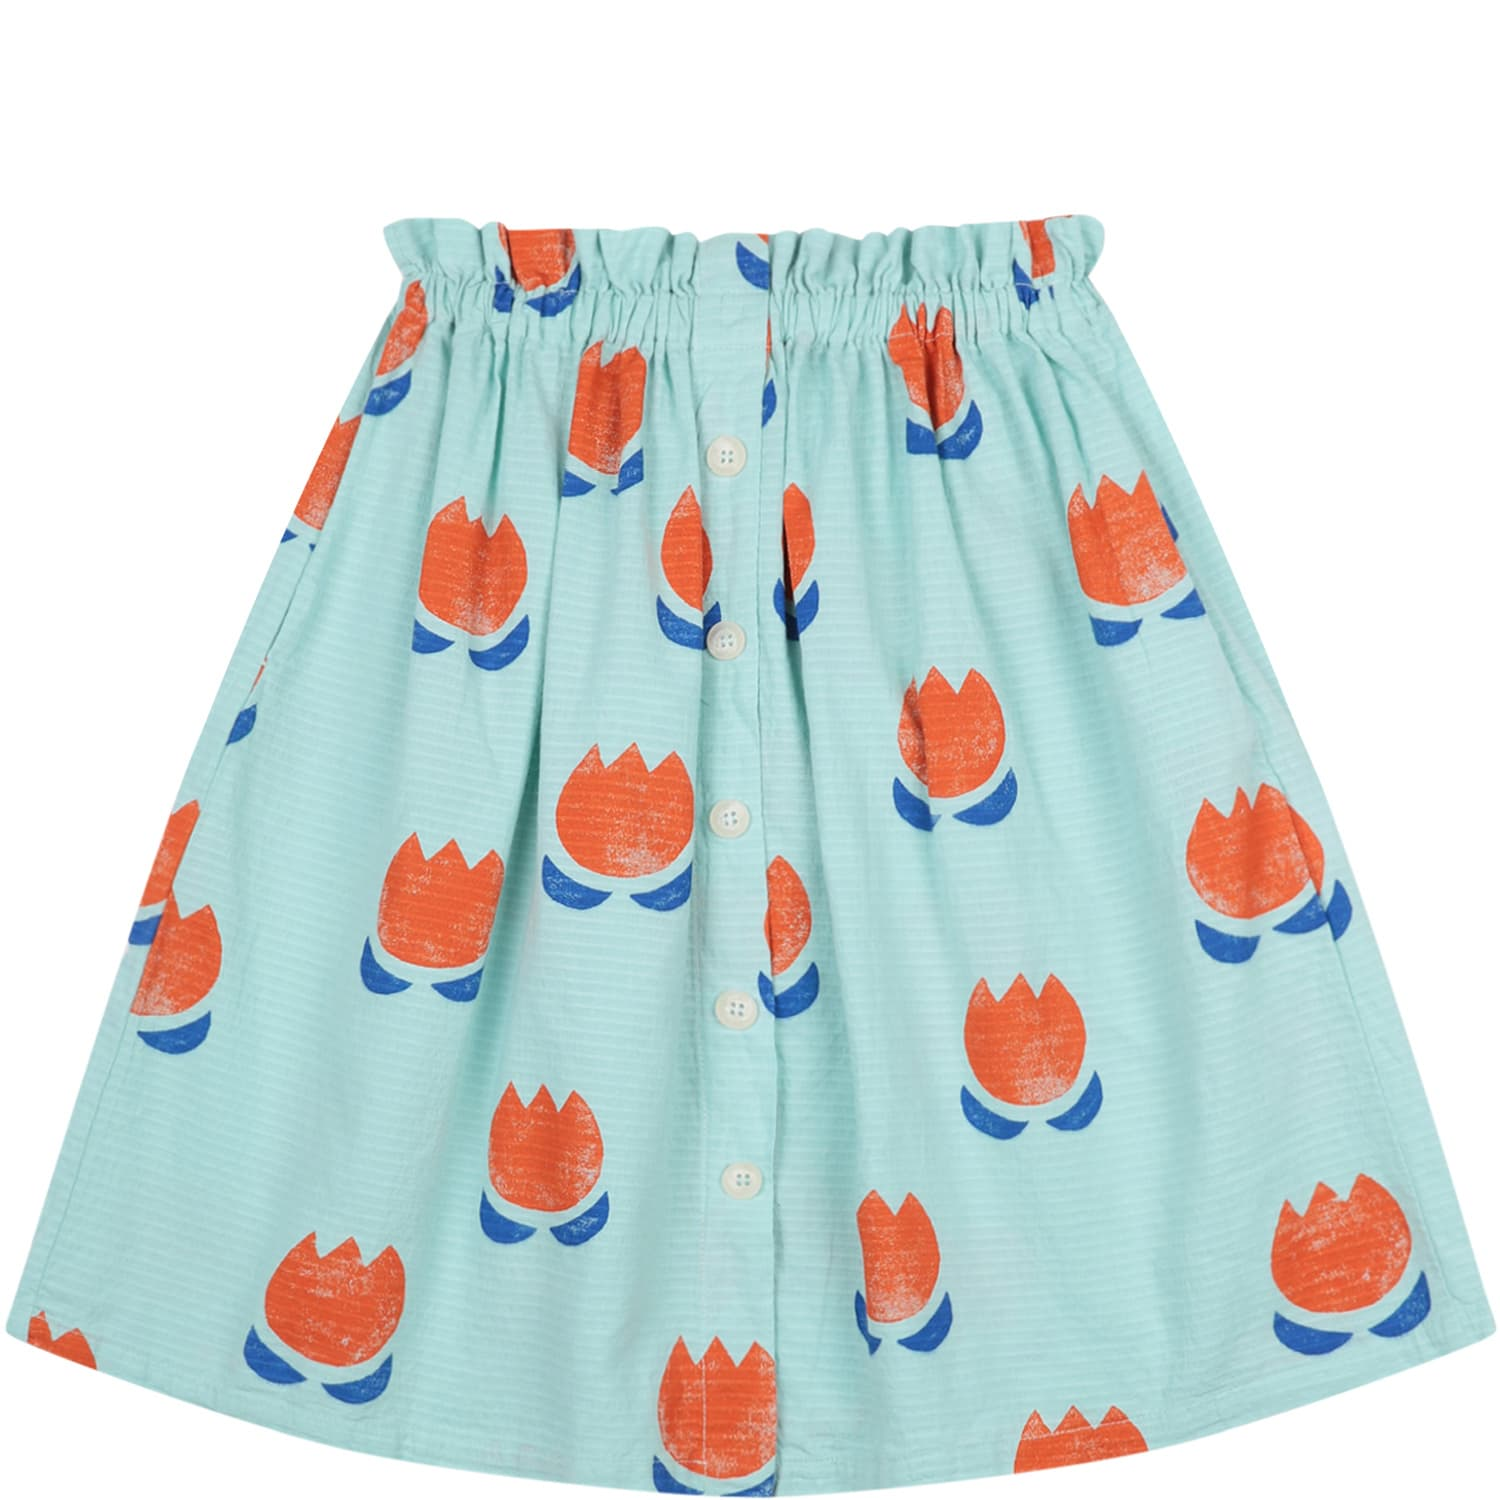 Bobo Choses GREEN SKIRT FOR GIRL WITH FLOWERS